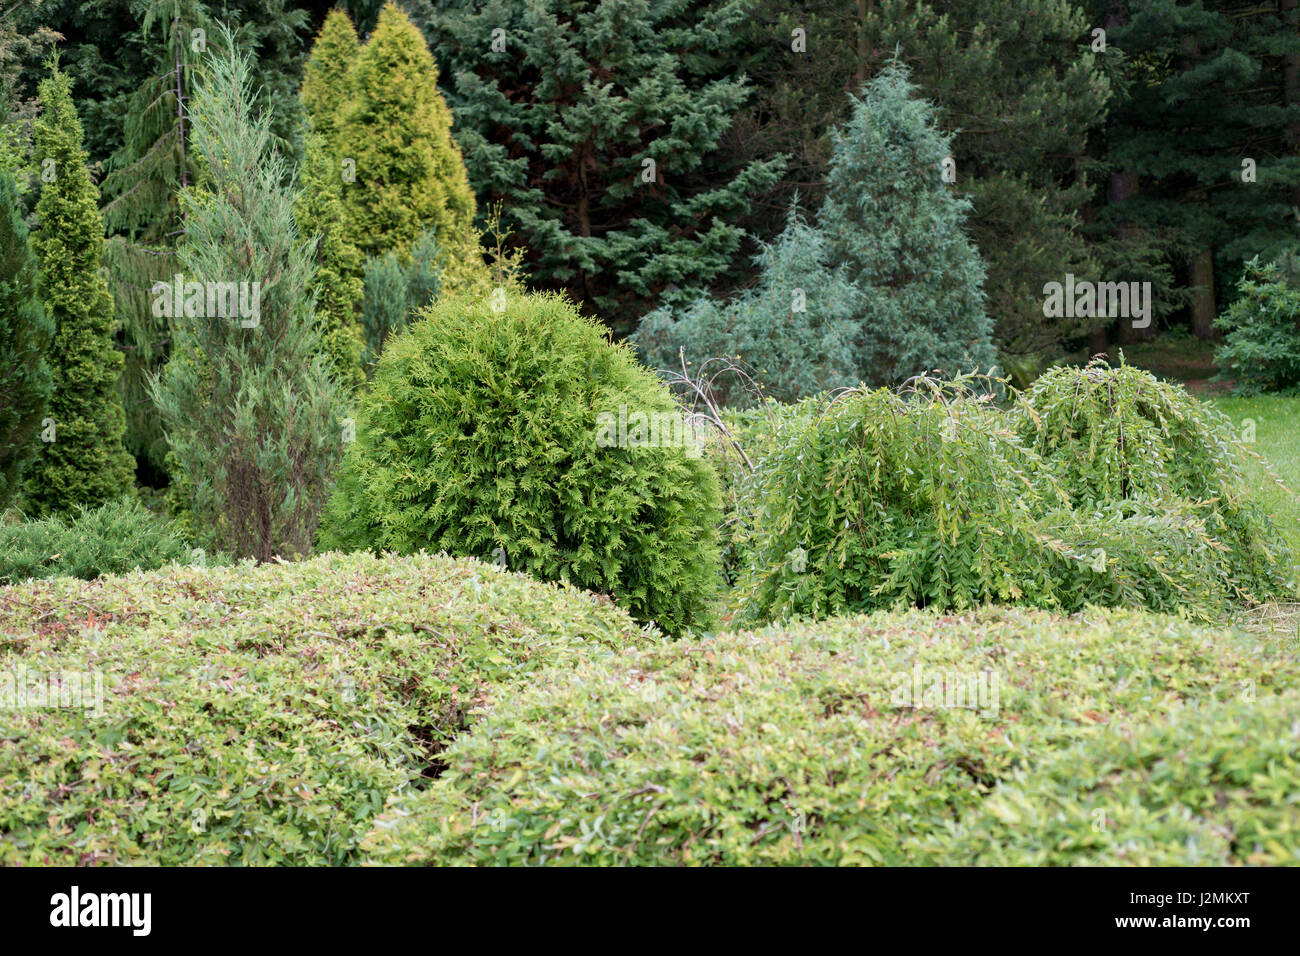 Evergreens in the garden in summer - Stock Image